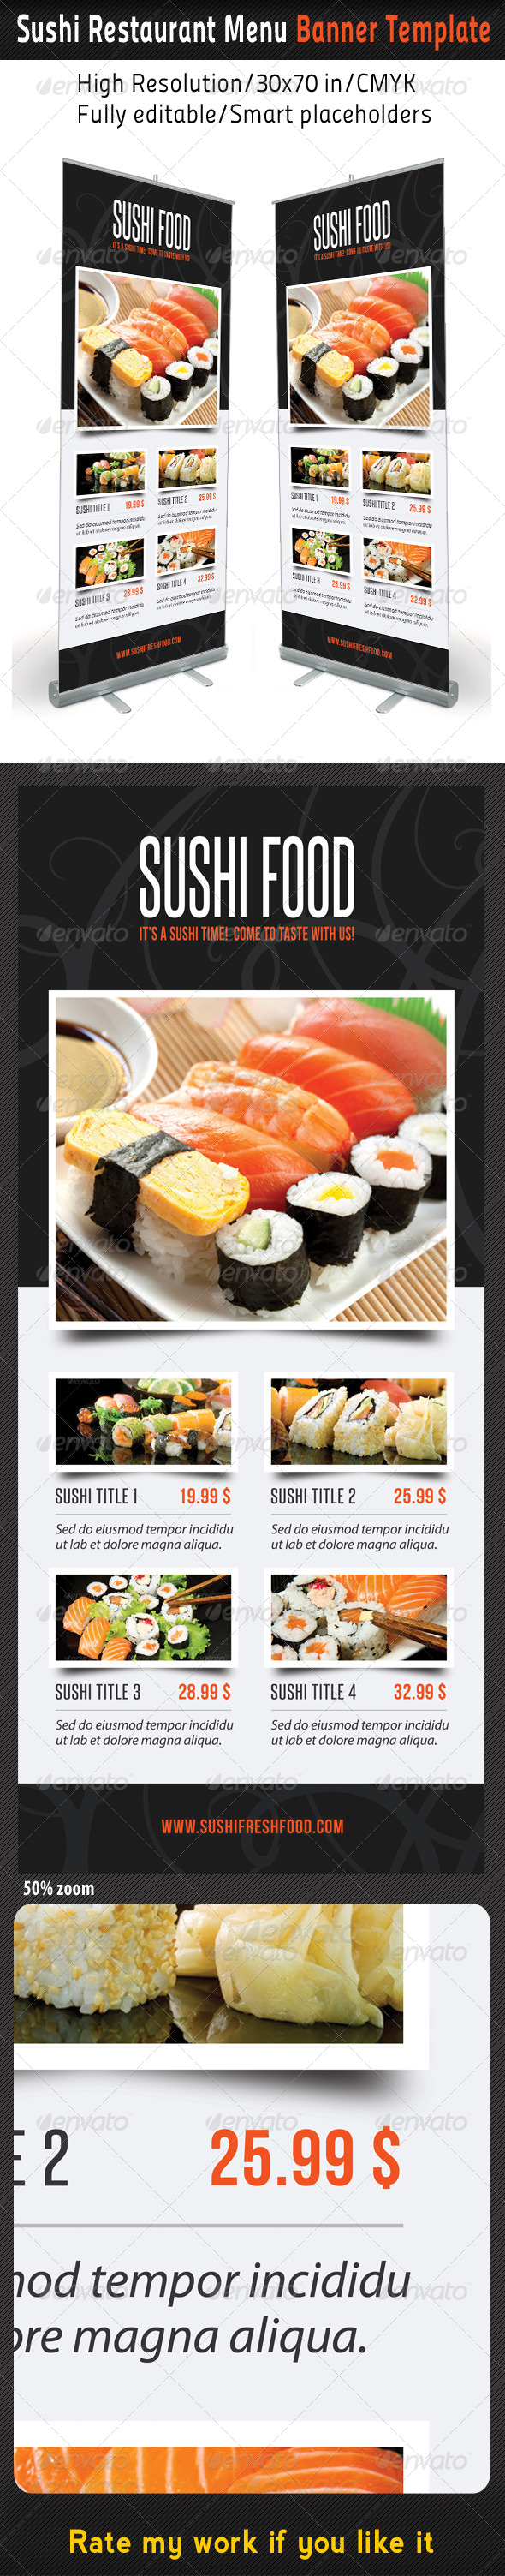 Sushi Menu Graphics Designs Templates From Graphicriver